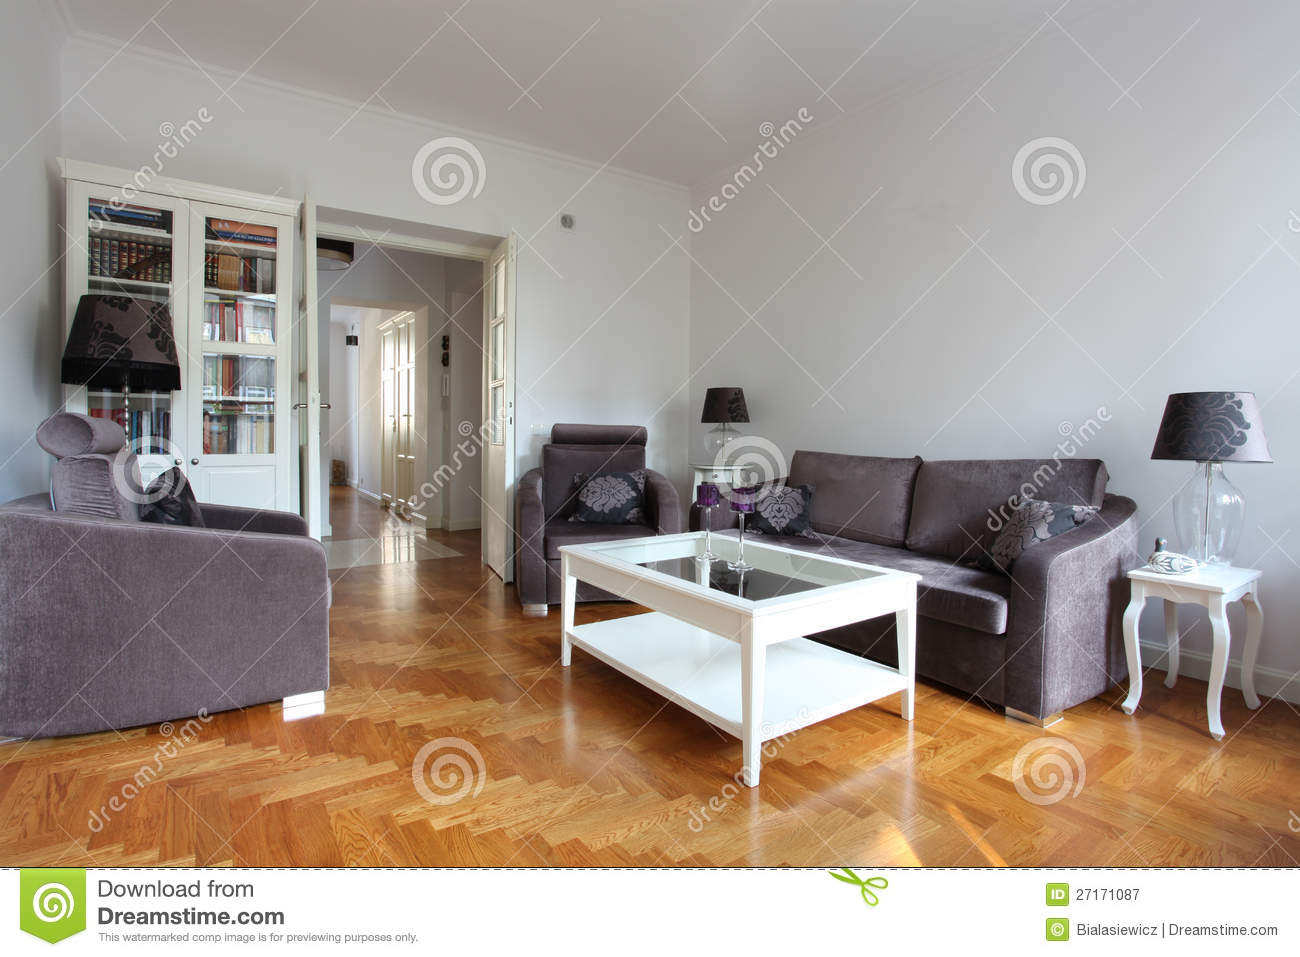 White And Purple Living Room Stock Image Image Of